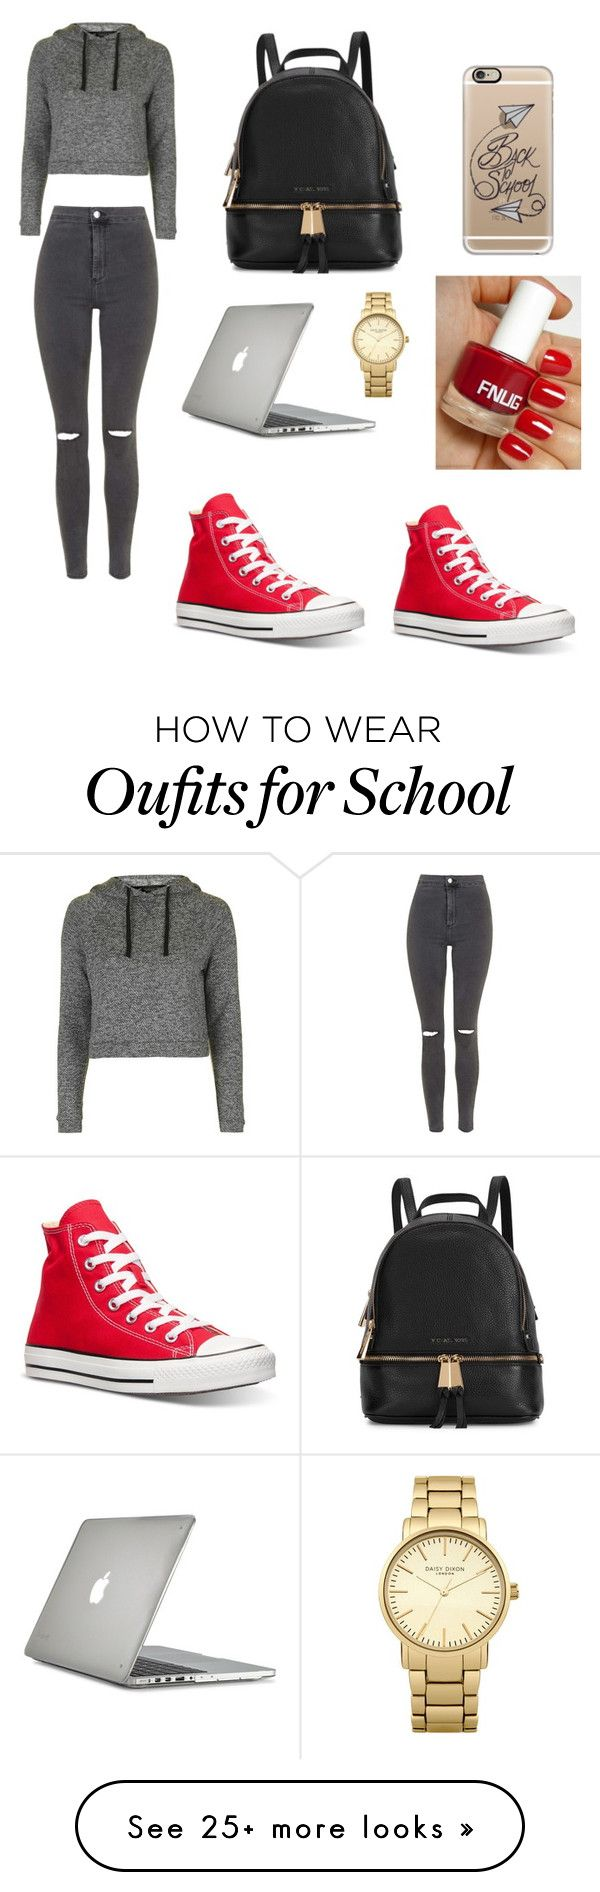 Back to school by ashleebaker2014 on Polyvore featuring Topshop, Converse, Michael Kors, Casetify and Speck